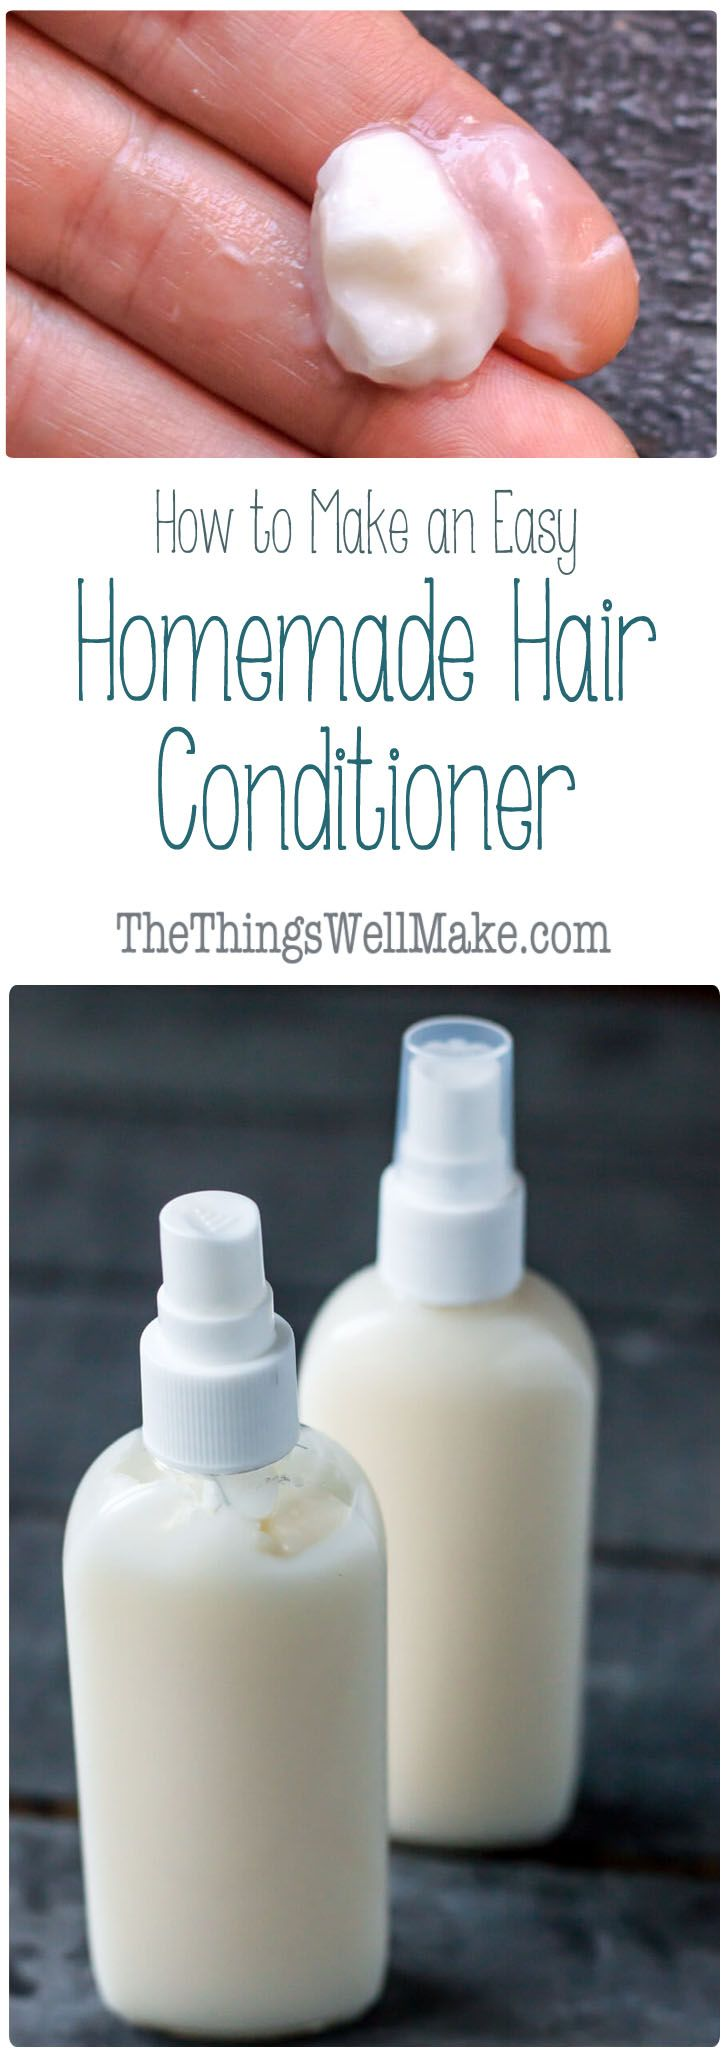 Easy Diy Hair Conditioner For Natural Hair Diy Hair Conditioner Homemade Hair Conditioner Homemade Hair Products